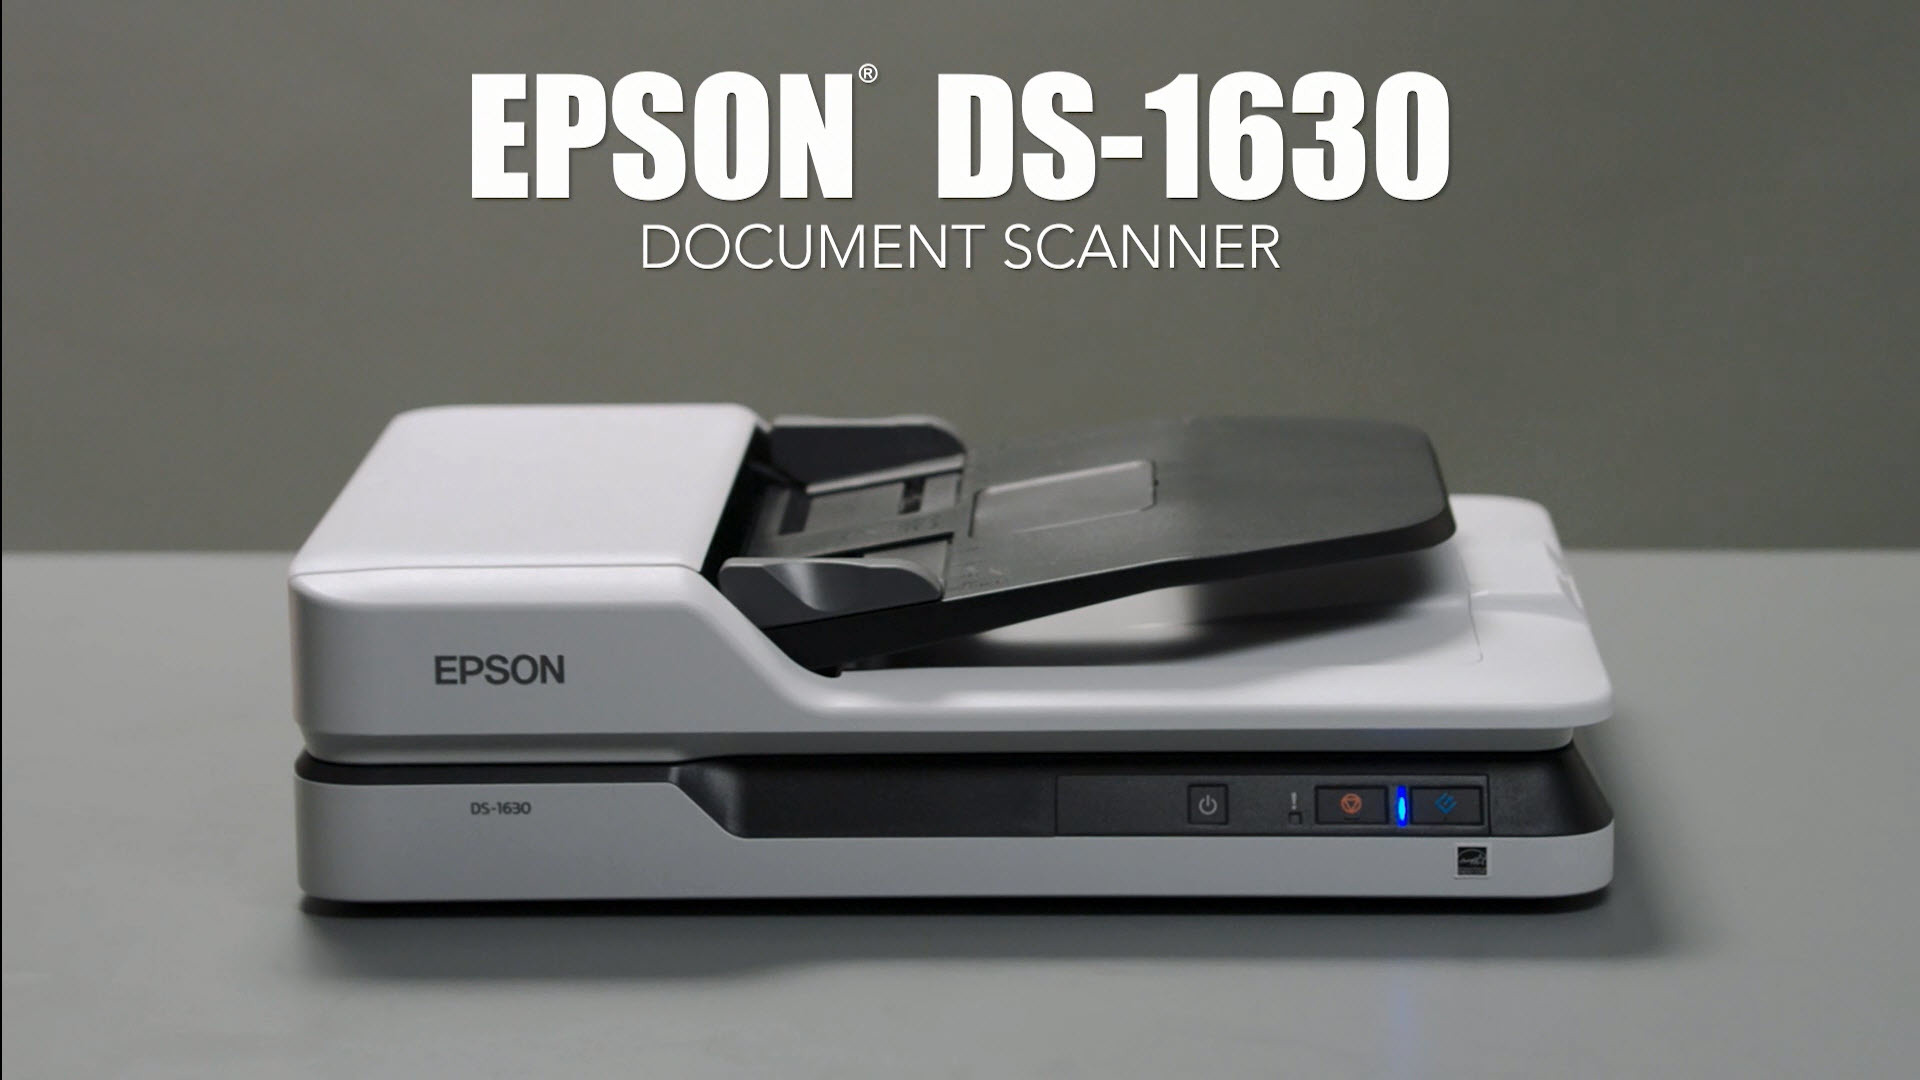 B11b239201 Epson Ds 1630 Flatbed Color Document Scanner Fujitsu Fi Series 7700s